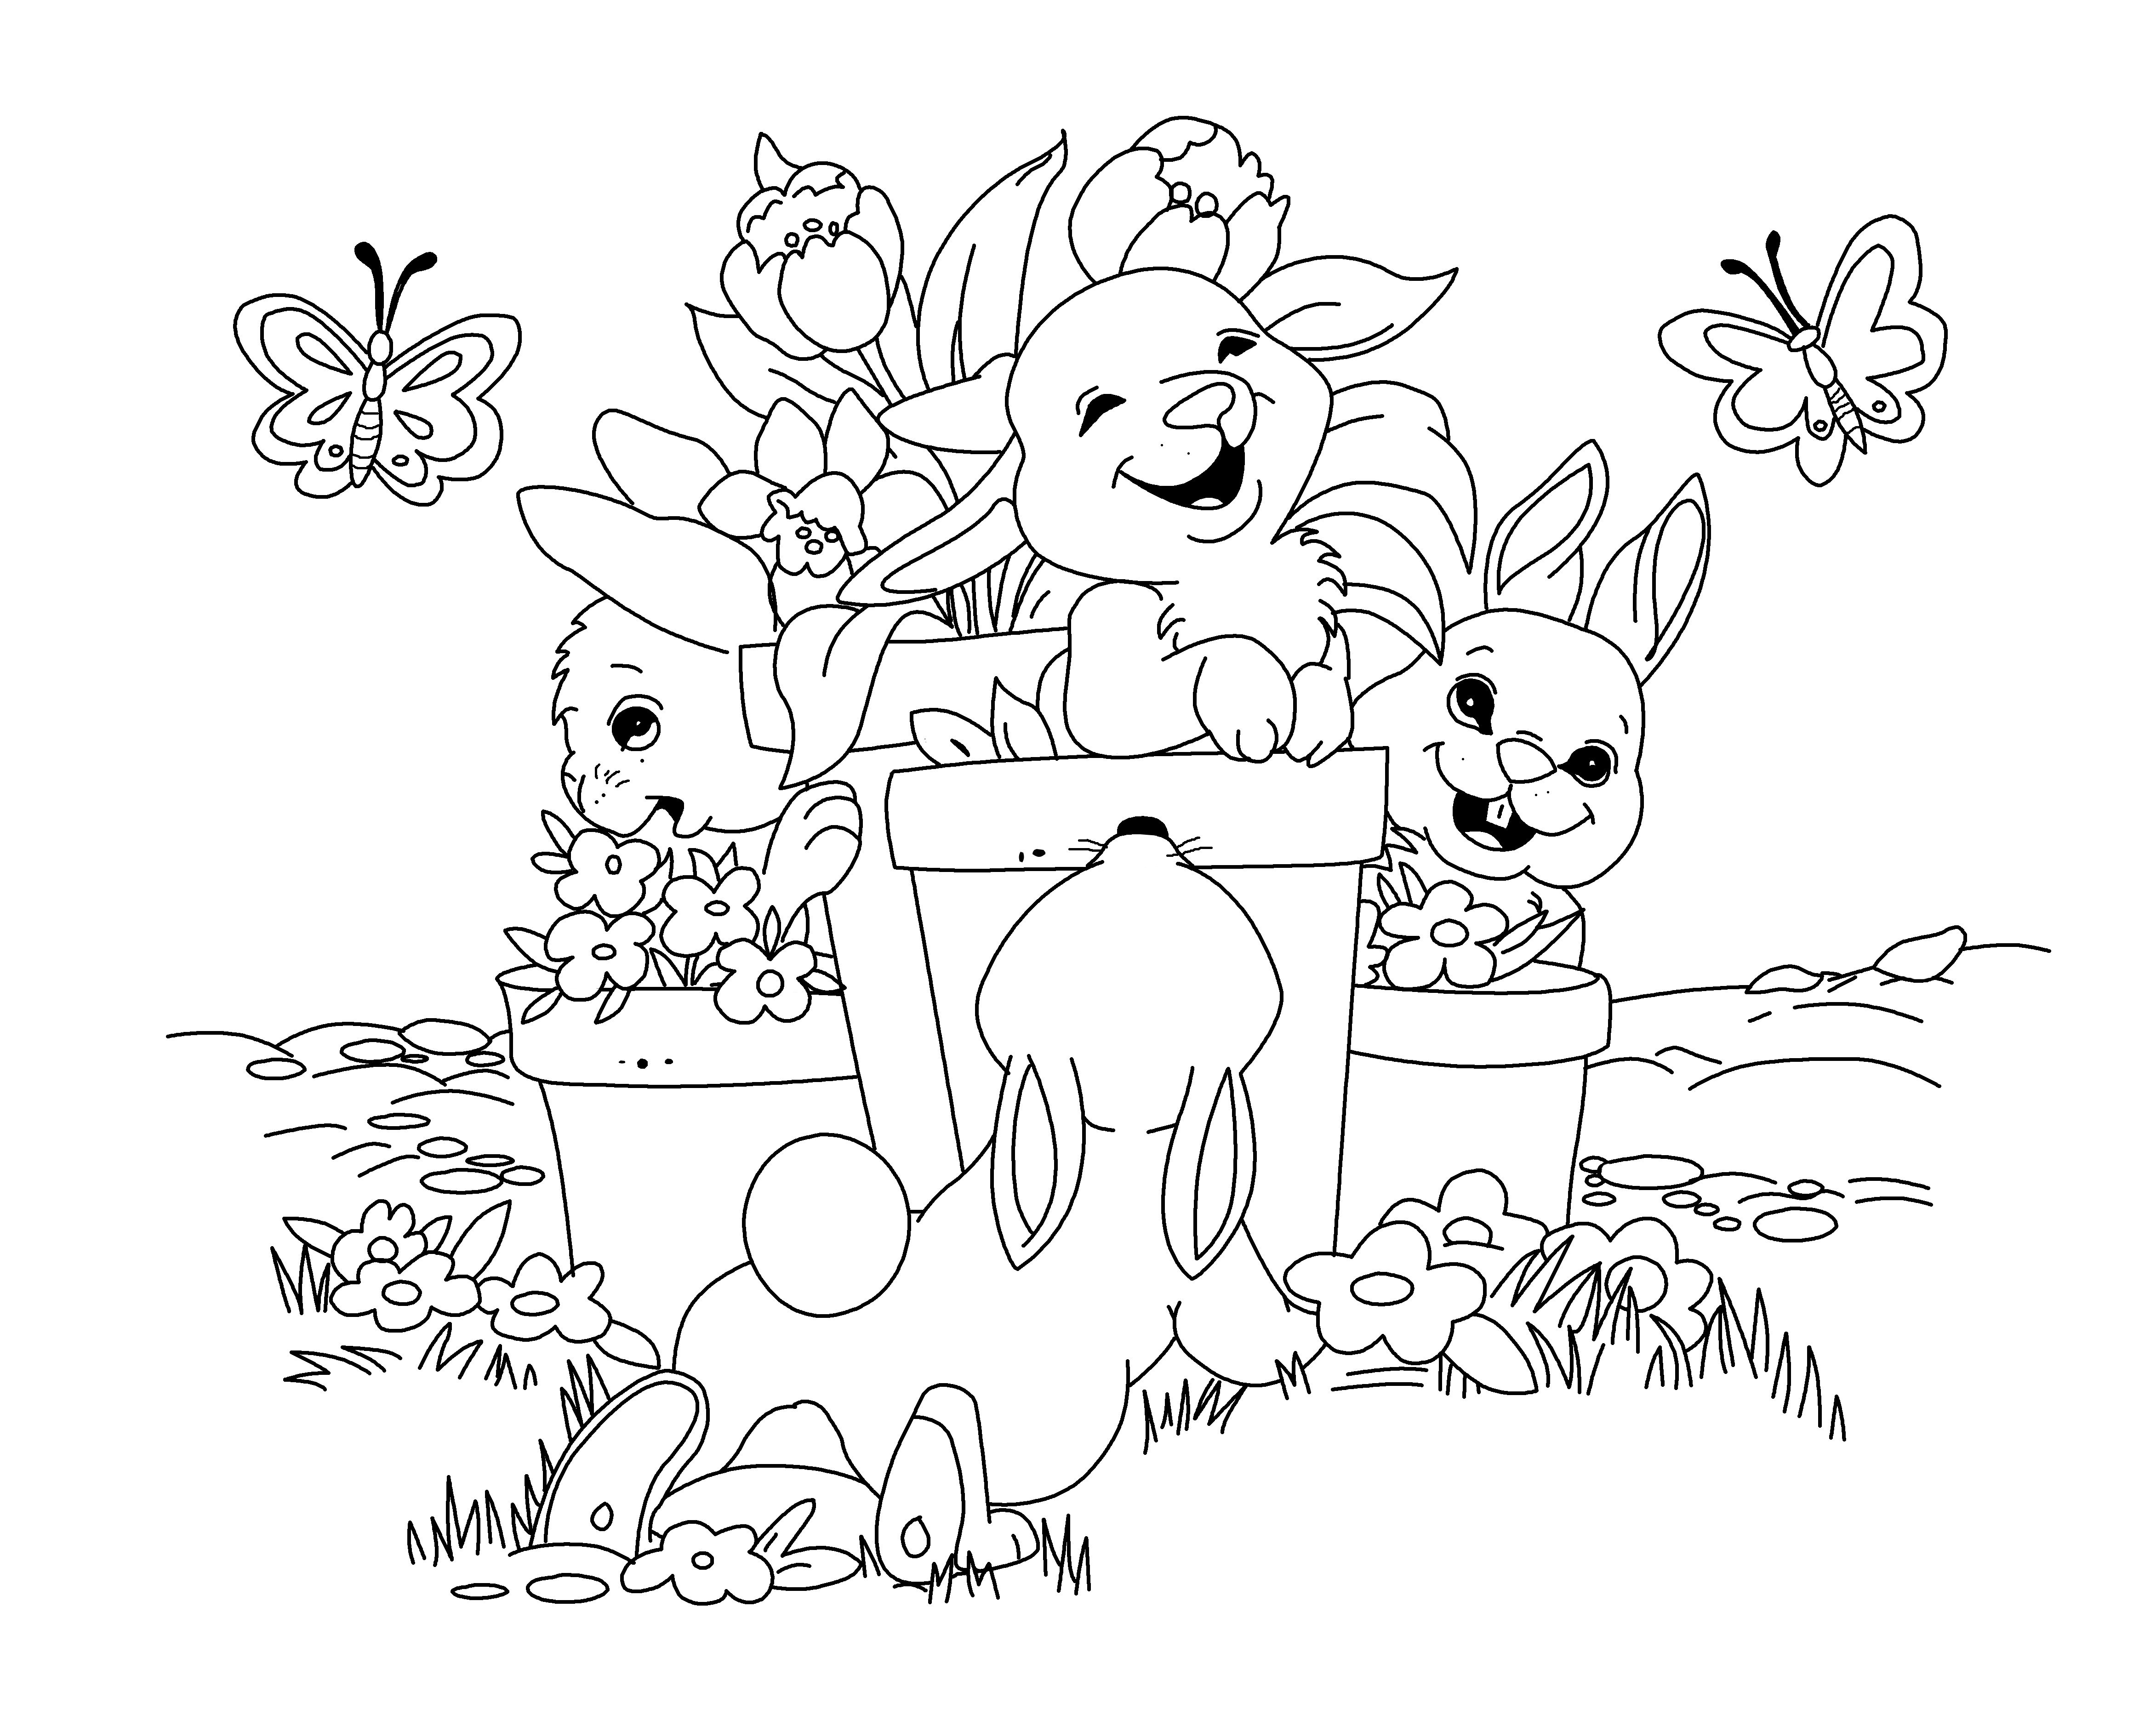 Pot Bunnies By Cristacat93maw Deviantart Com Spring Coloring Pages Animal Coloring Pages Easter Coloring Pages